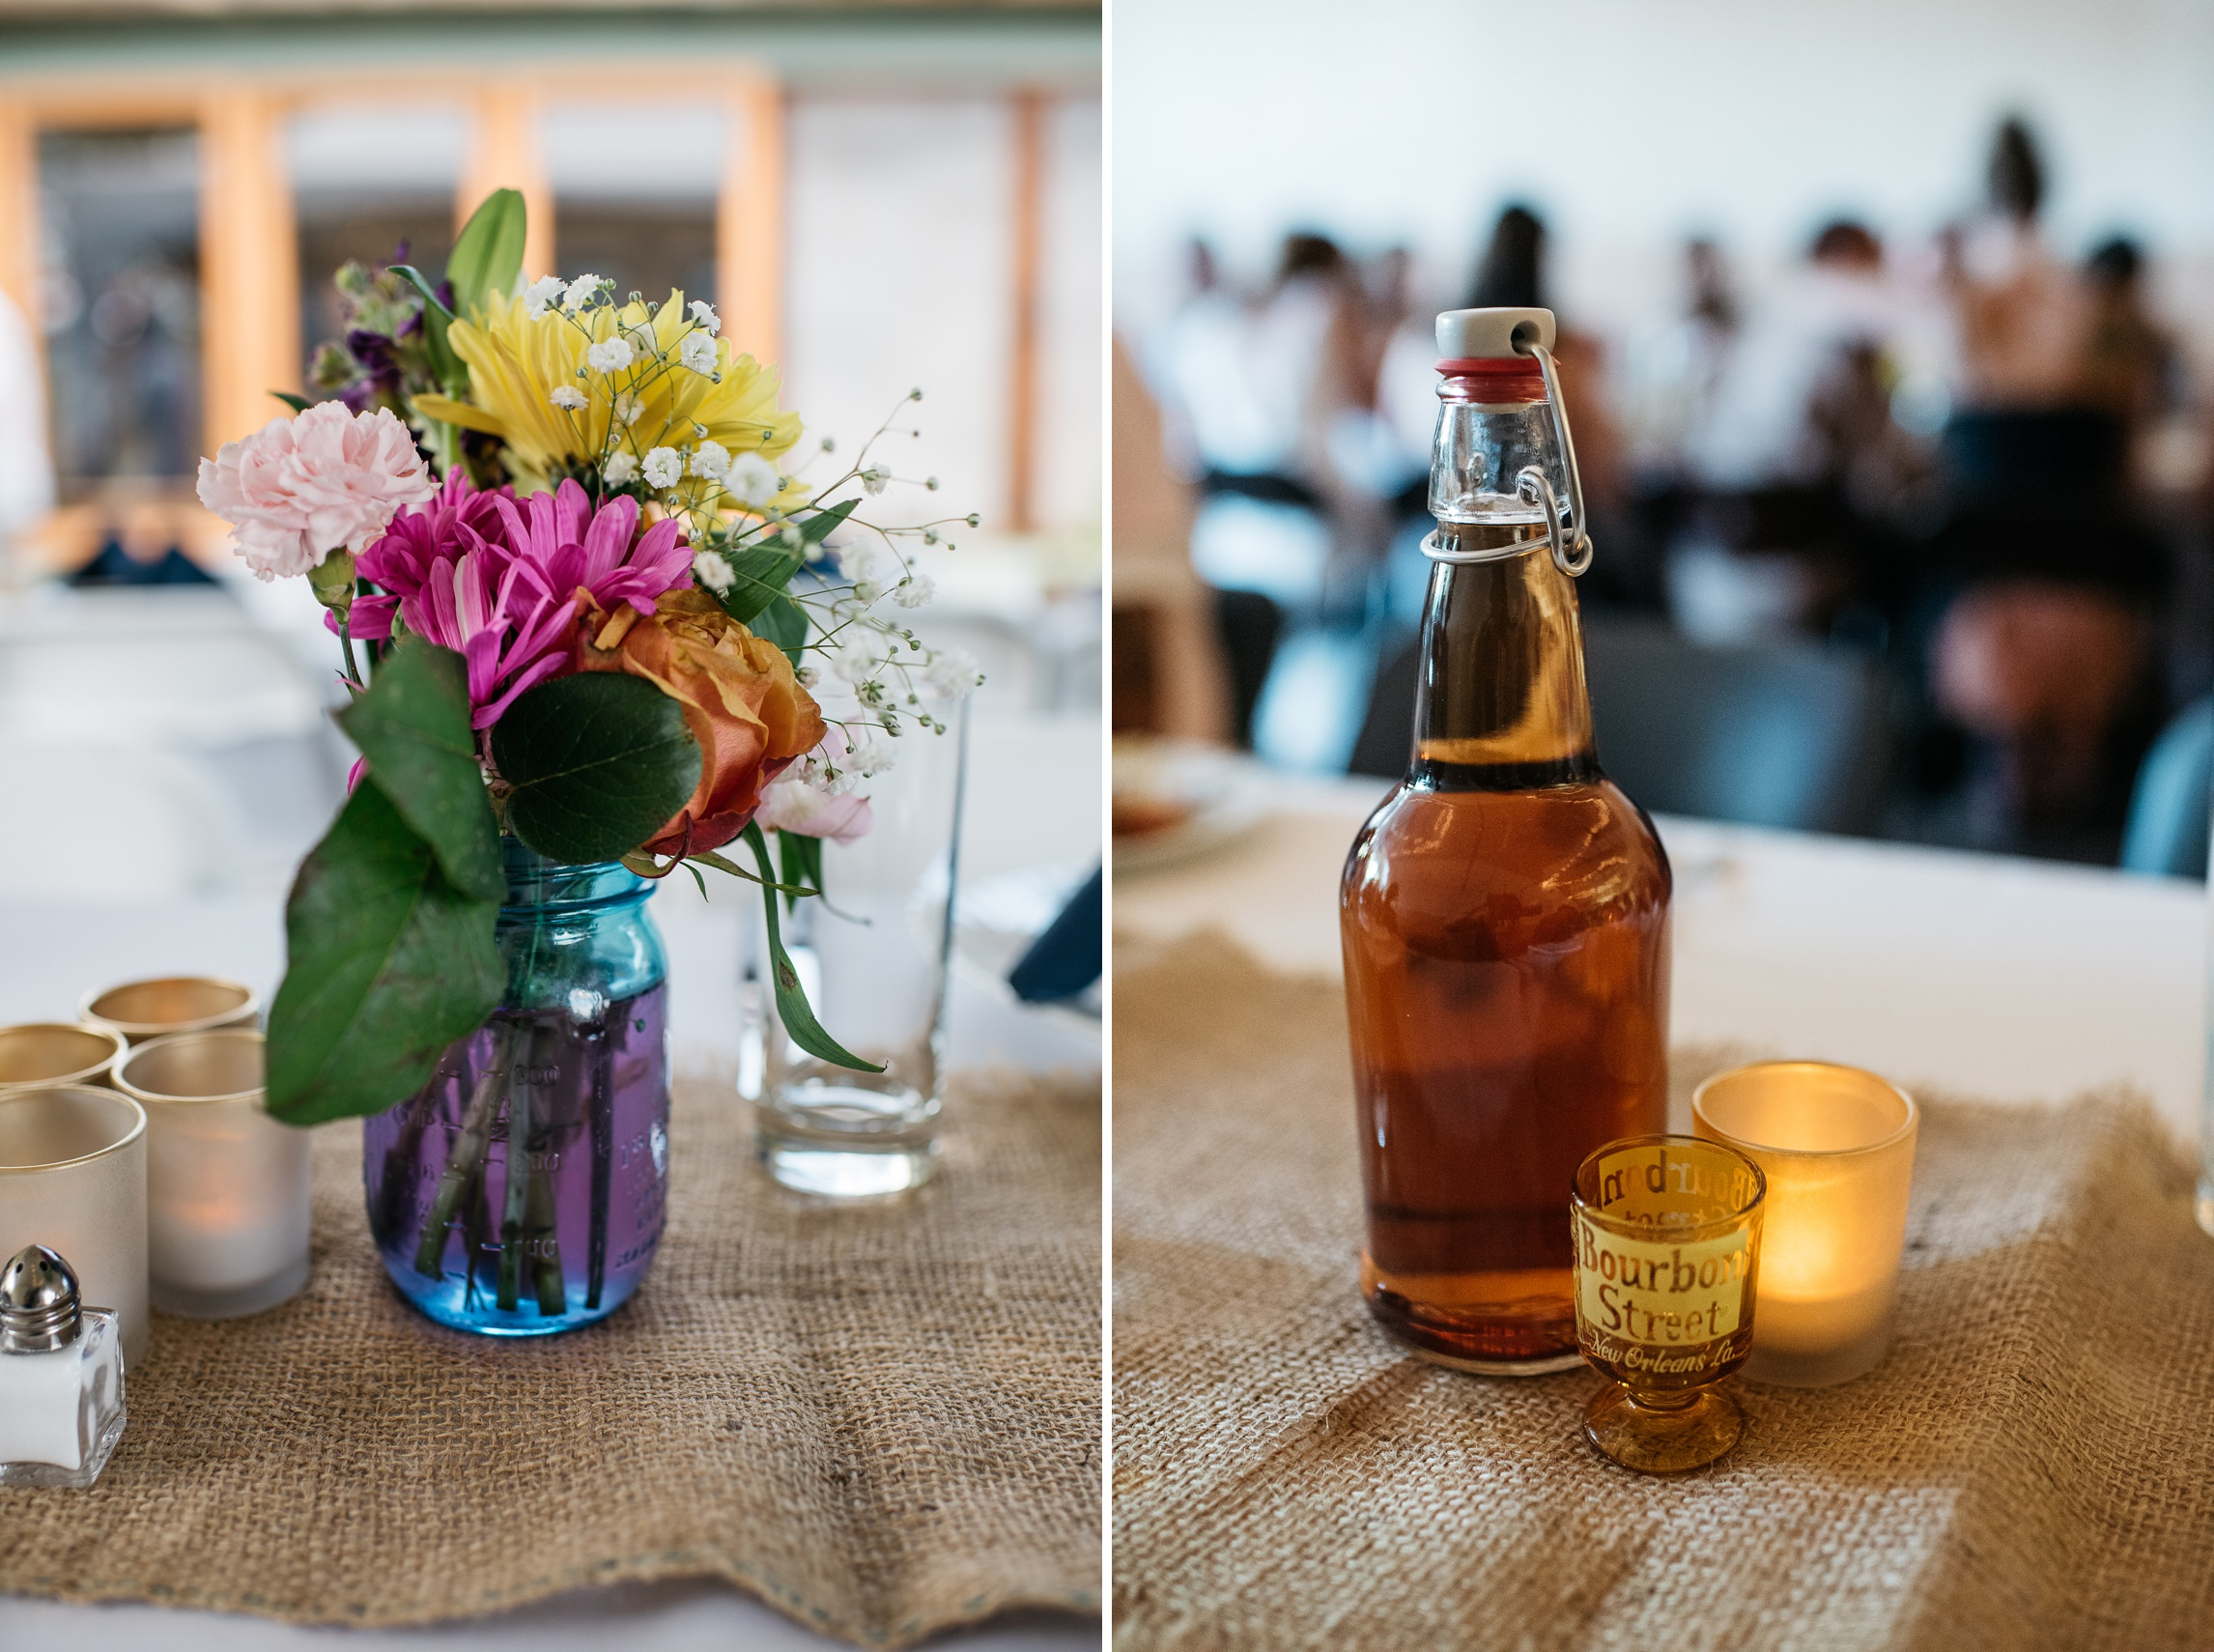 A bright centerpiece of flowers and homemade moonshine at a wedding reception at the Bellvue Grange in Bellvue, Colorado. Wedding detail photography by Sonja Salzburg of Sonja K Photography.